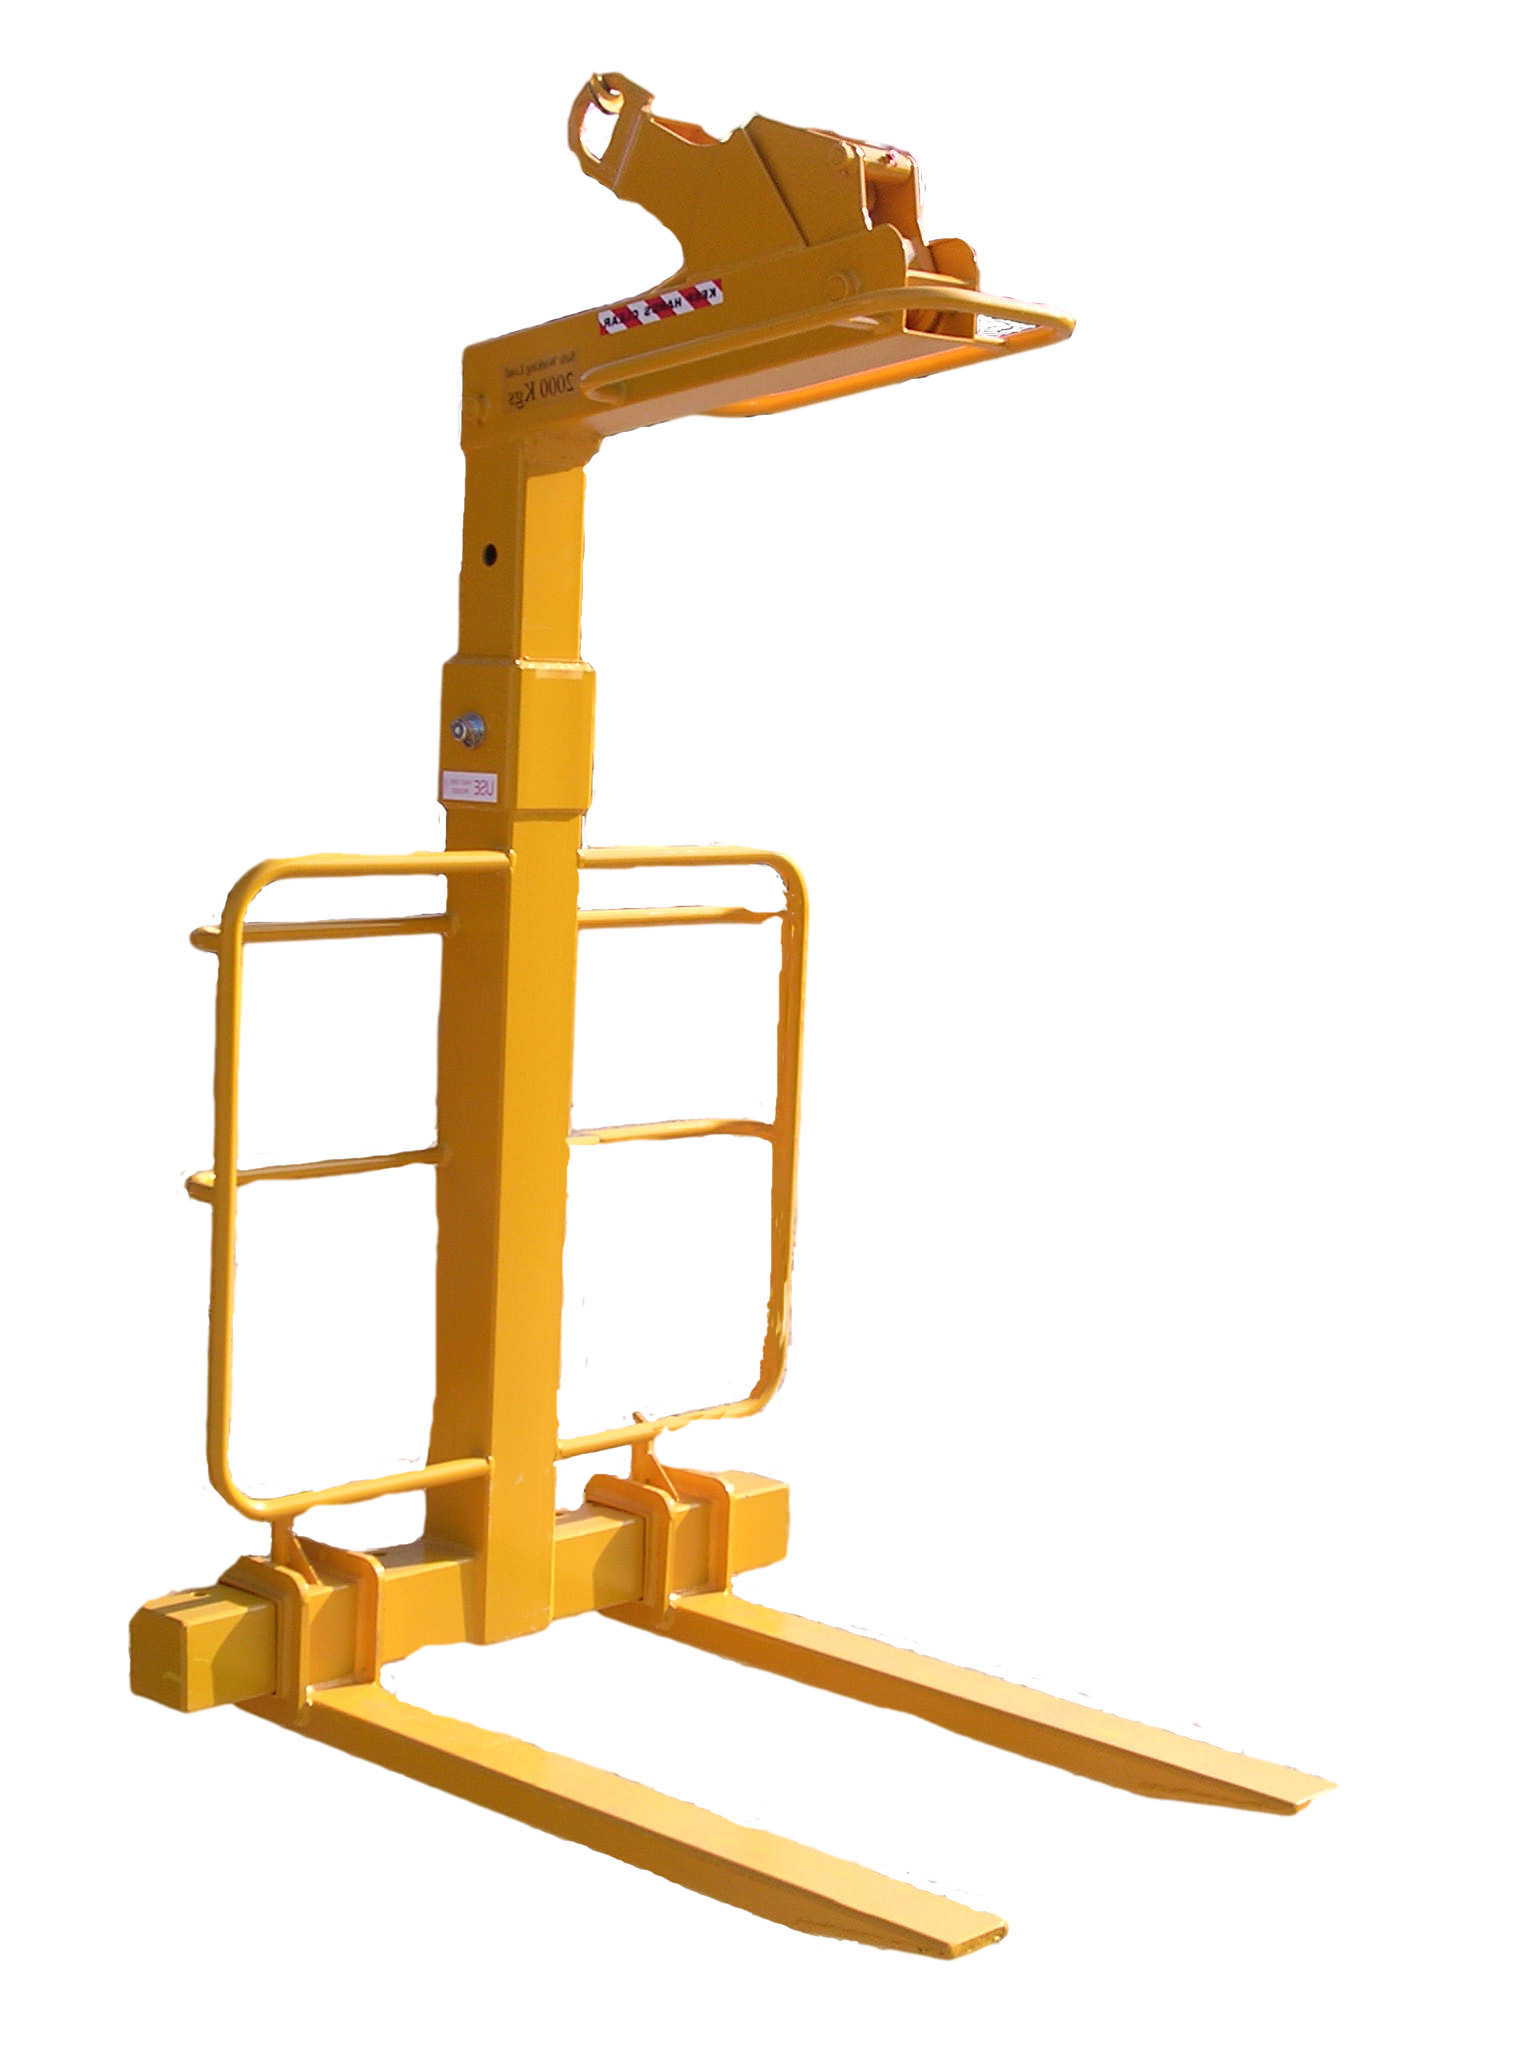 Forklift Lifting Attachments : Jd lifting fork mounted attachments